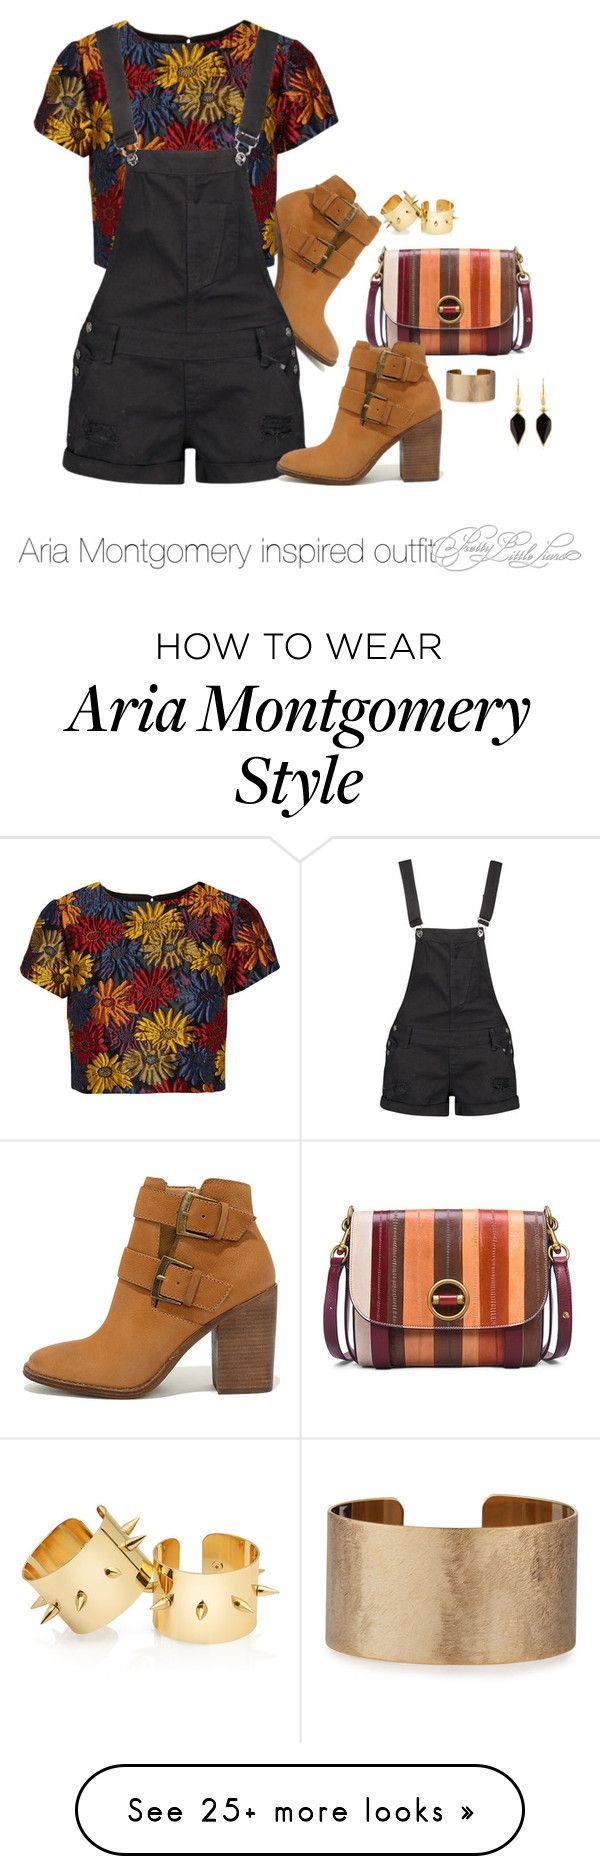 U0026quot;Aria Montgomery inspired outfit!/PLLu0026quot; by tvdsarahmichele on Polyvore featuring Steve Madden ...